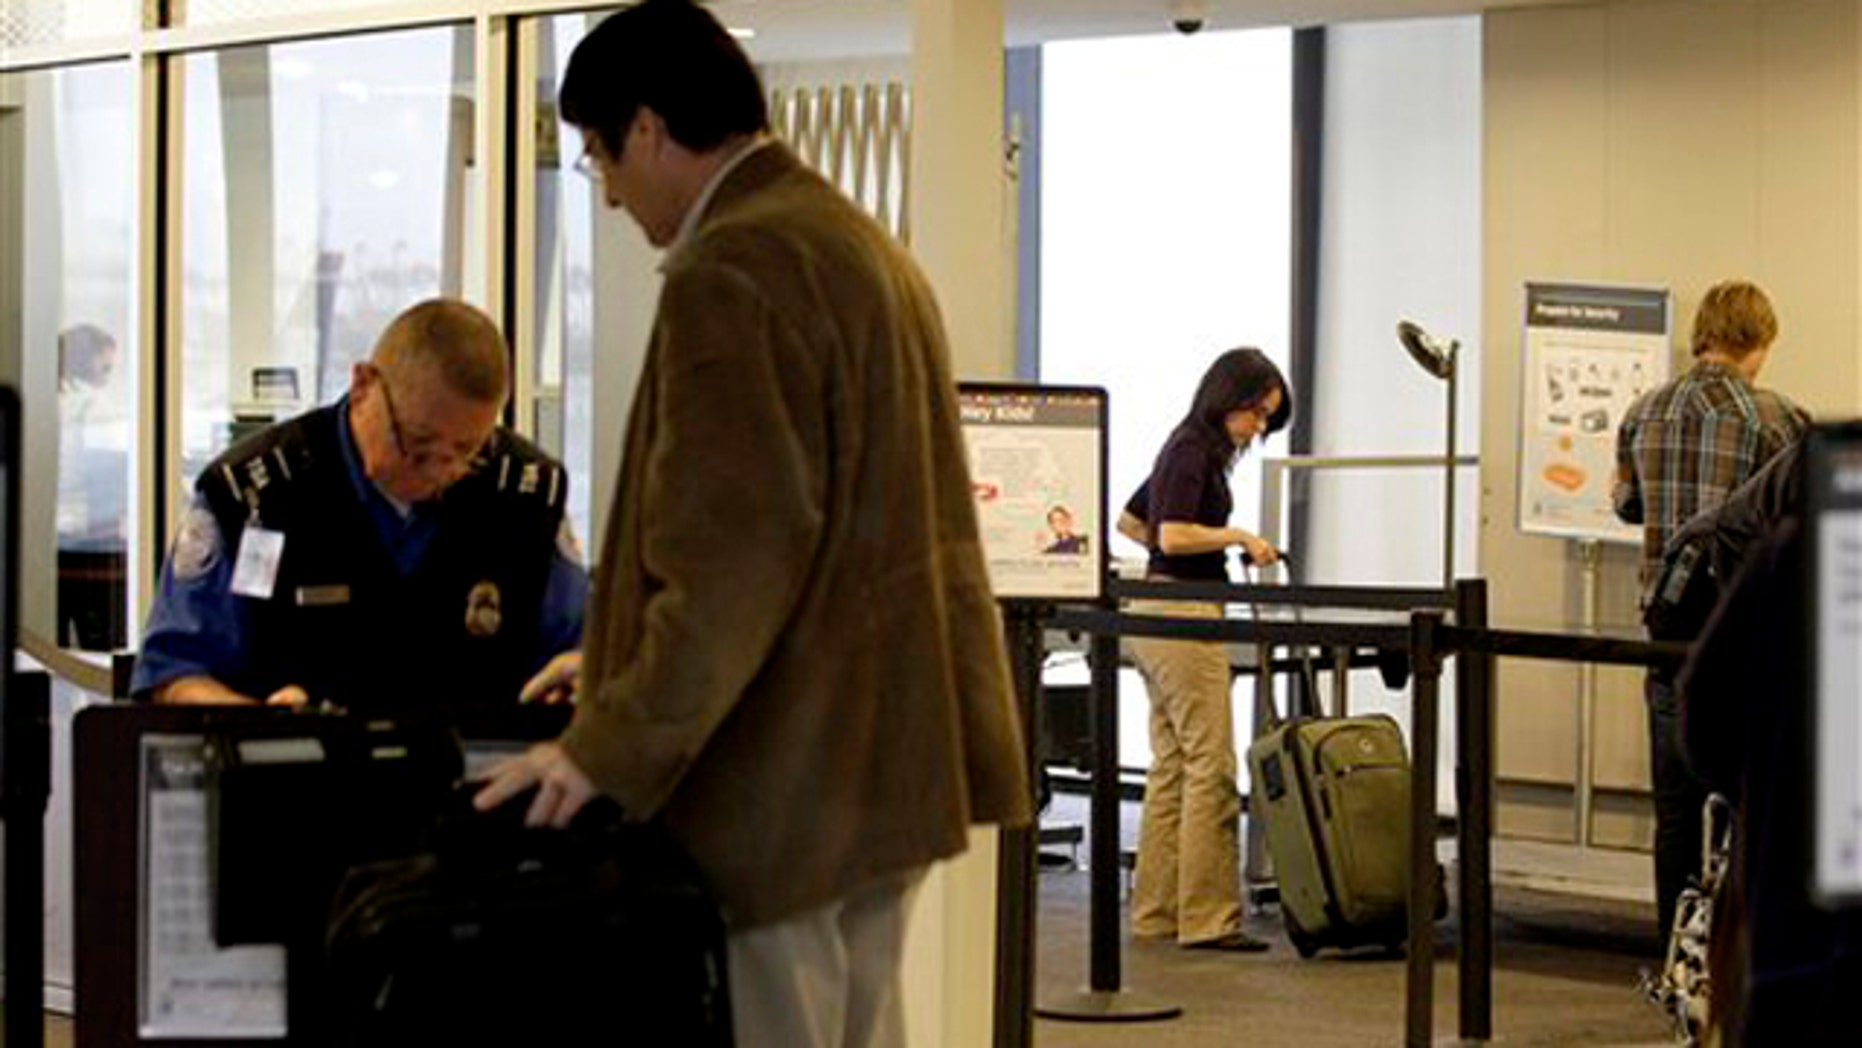 Nov. 17, 2011: Travelers are seen at the security area of Newark Liberty International Airport in Newark, N.J.